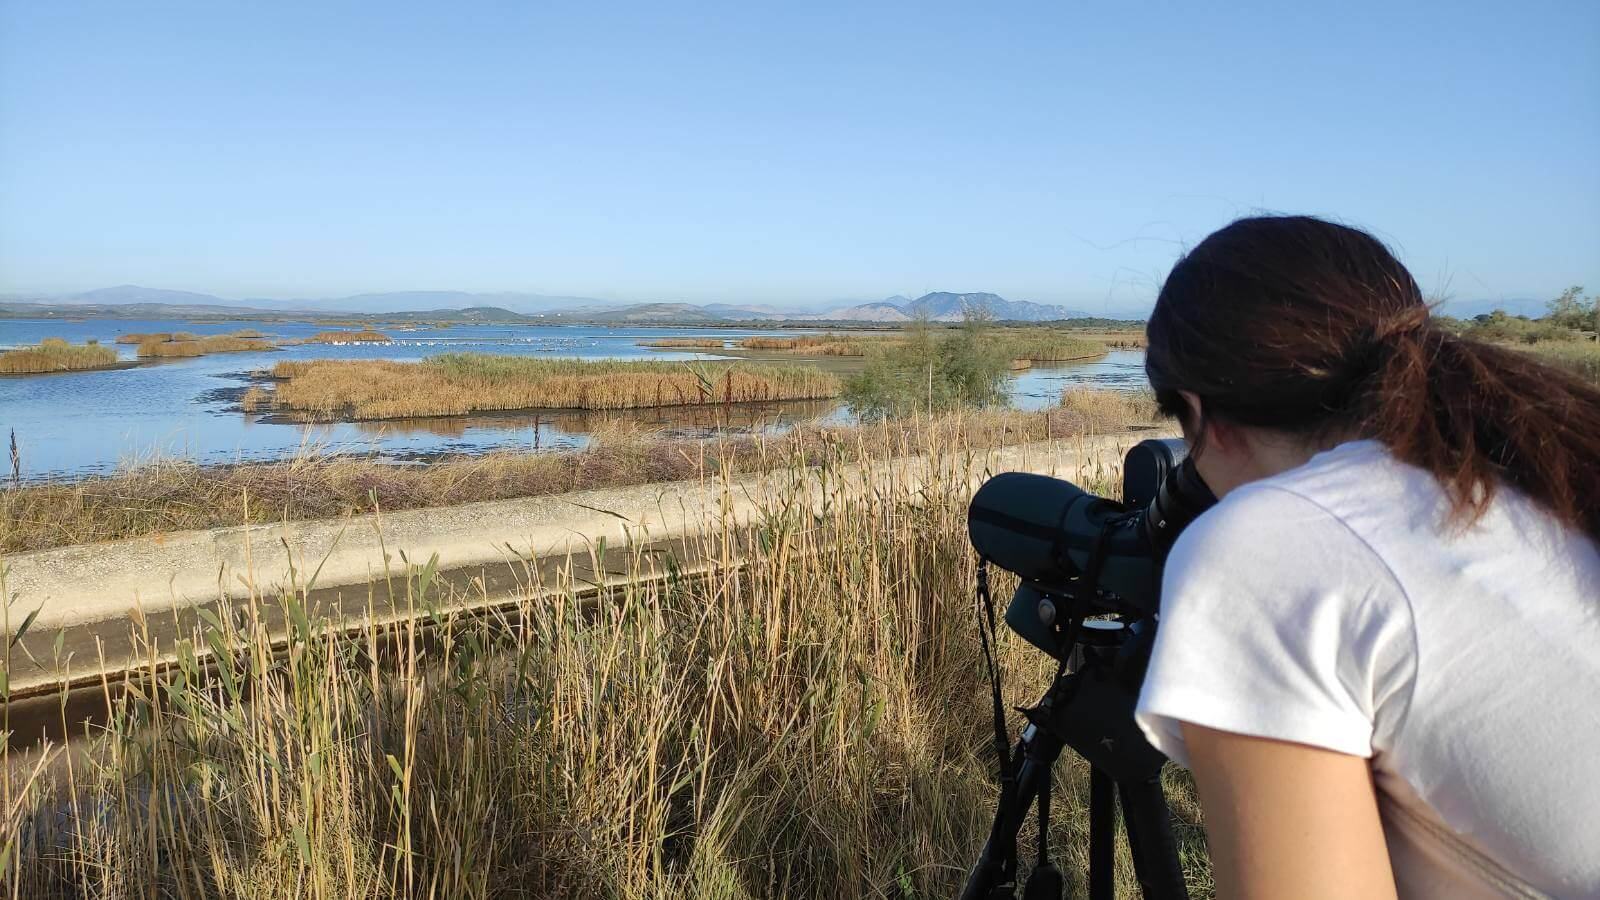 All 12 months the birds can be observed in Ulcinj's Salina